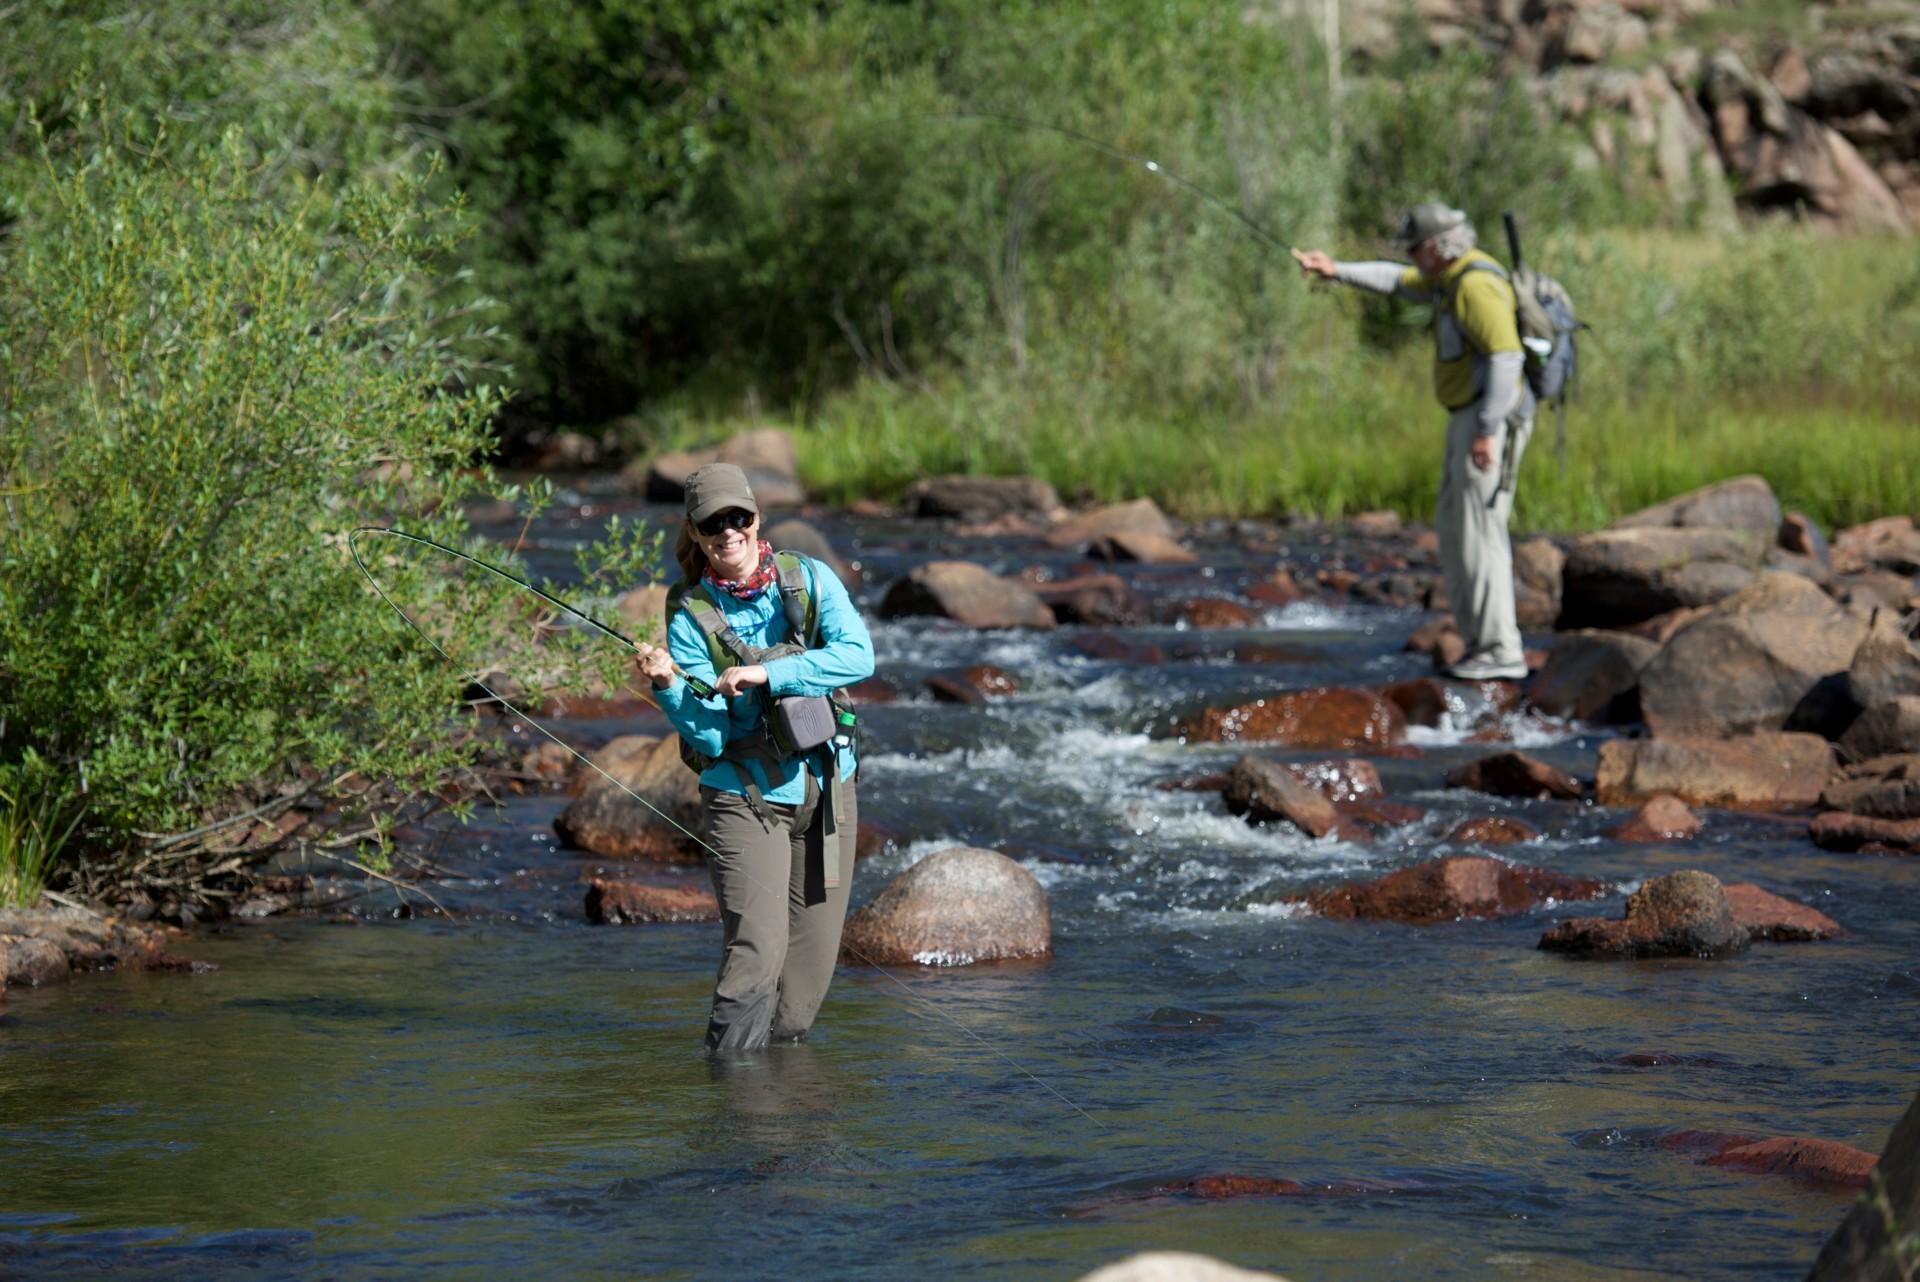 A man and woman fly fishing in picturesque Colorado mountain stream